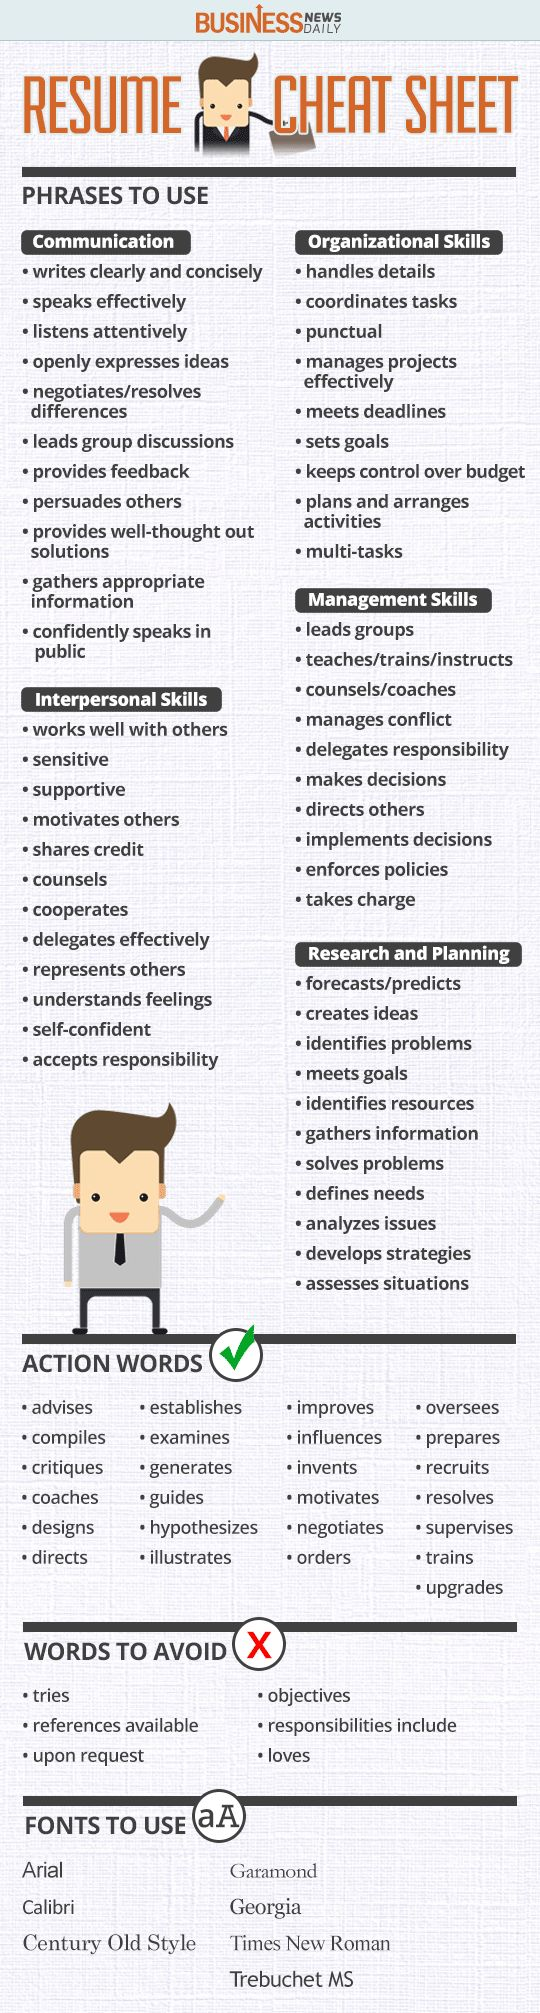 Opposenewapstandardsus  Marvelous  Ideas About Resume On Pinterest  Cv Format Resume Cv And  With Remarkable Resume Cheat Sheet Infographic Andrews Almost Done With A Complete Unit On Employment Which With Comely Clerical Skills Resume Also Resume Packet In Addition Cashiers Resume And Catering Sales Manager Resume As Well As Pics Of Resumes Additionally Java Architect Resume From Pinterestcom With Opposenewapstandardsus  Remarkable  Ideas About Resume On Pinterest  Cv Format Resume Cv And  With Comely Resume Cheat Sheet Infographic Andrews Almost Done With A Complete Unit On Employment Which And Marvelous Clerical Skills Resume Also Resume Packet In Addition Cashiers Resume From Pinterestcom